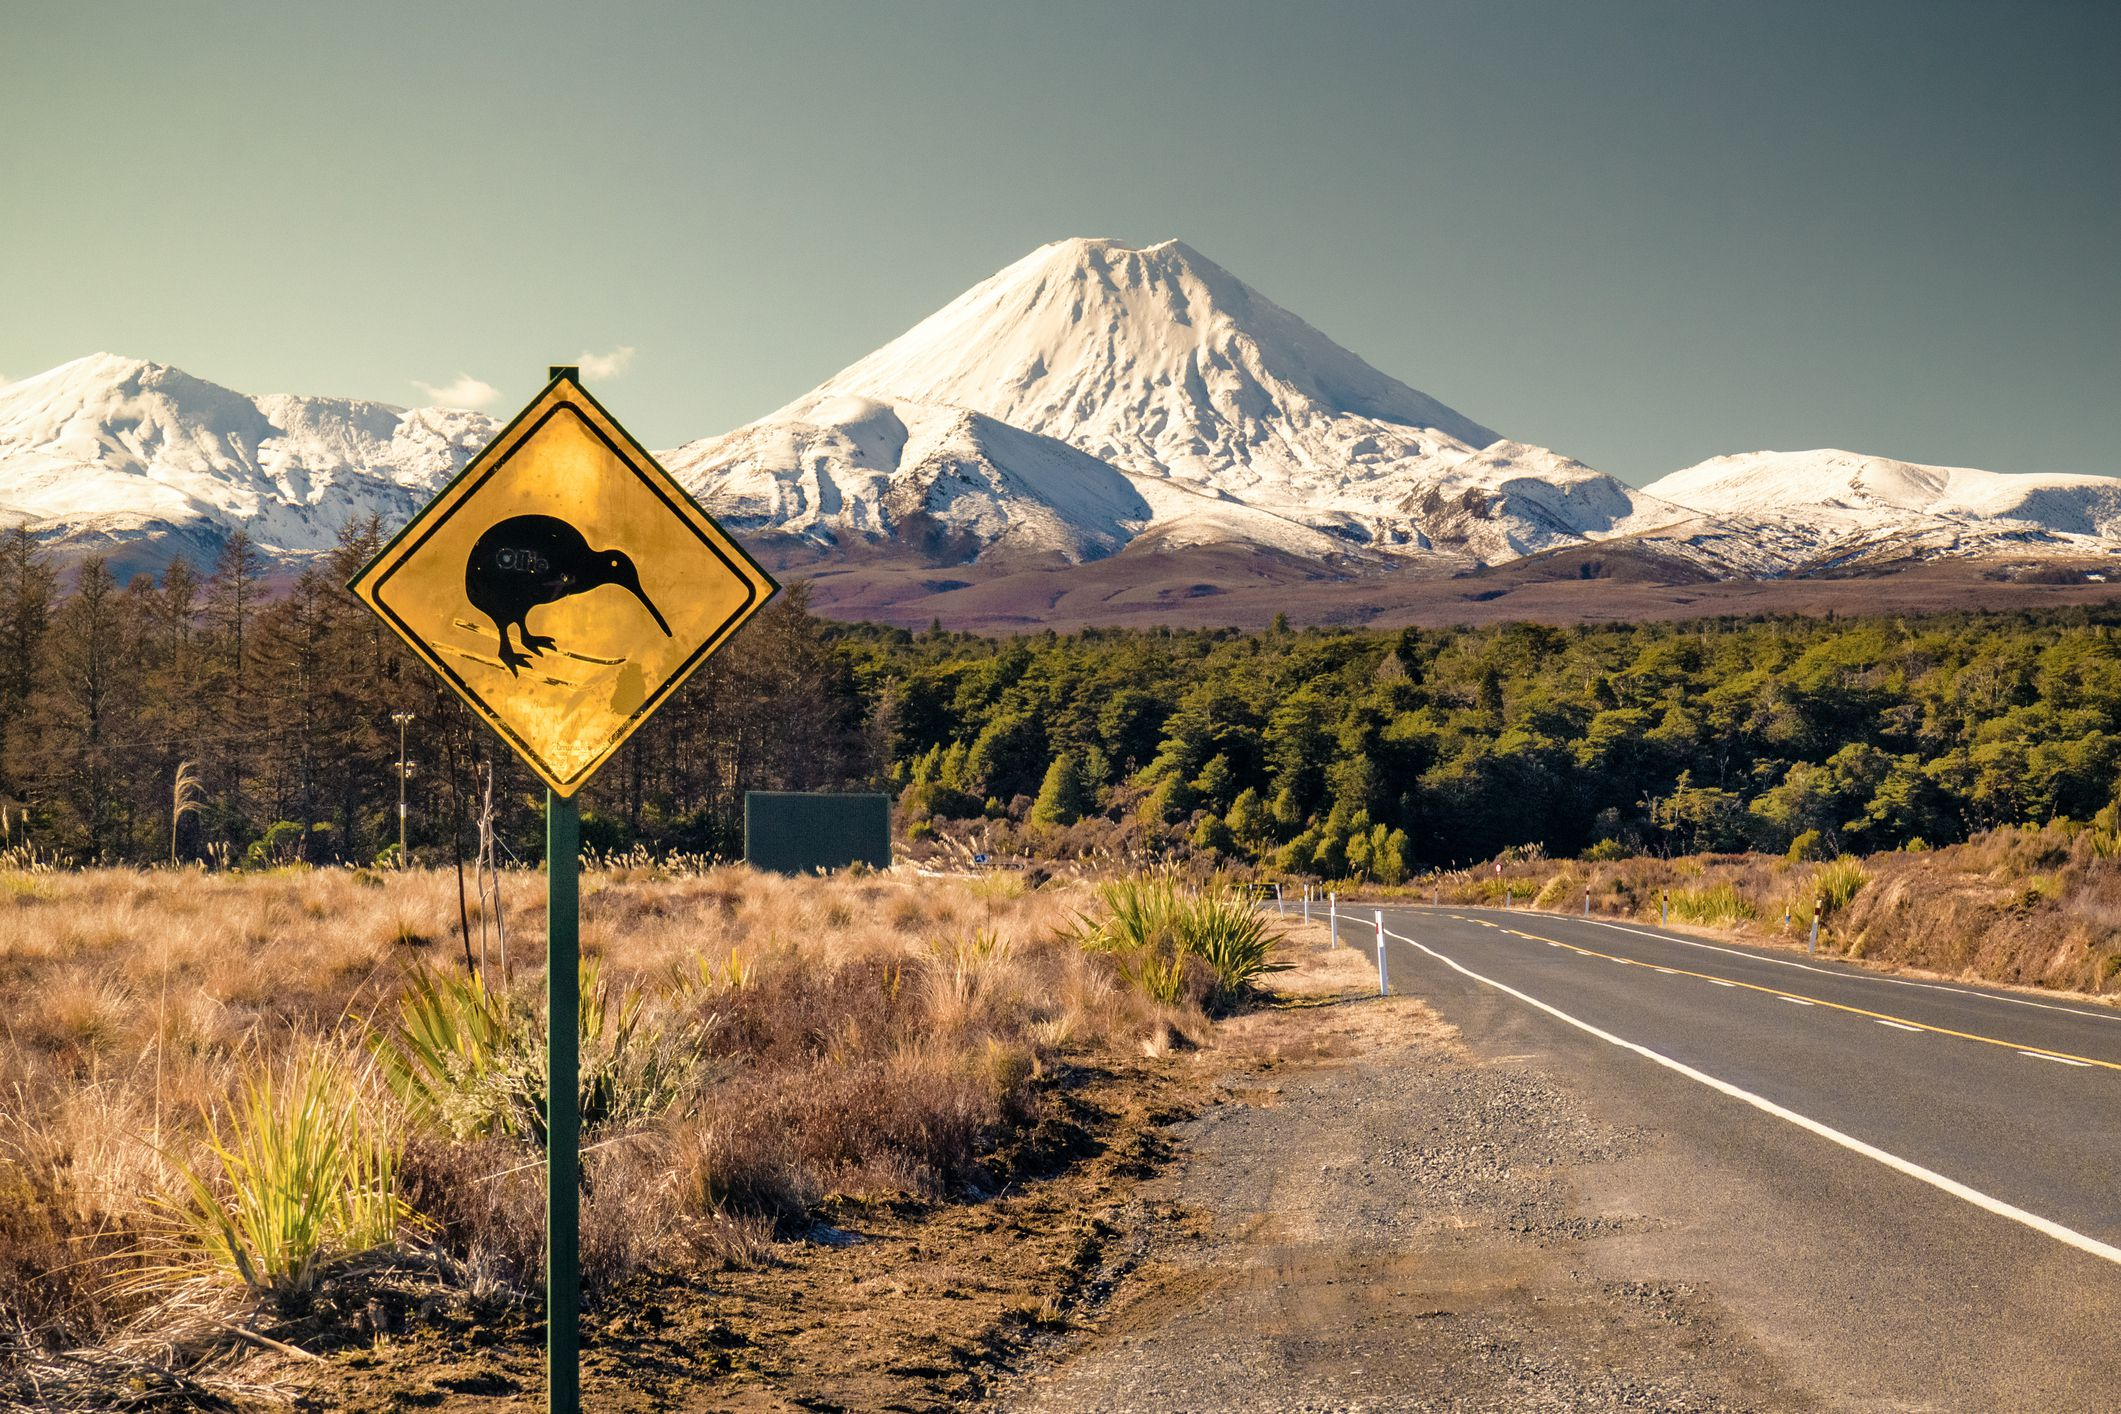 Where To See Kiwis In The Wild In New Zealand